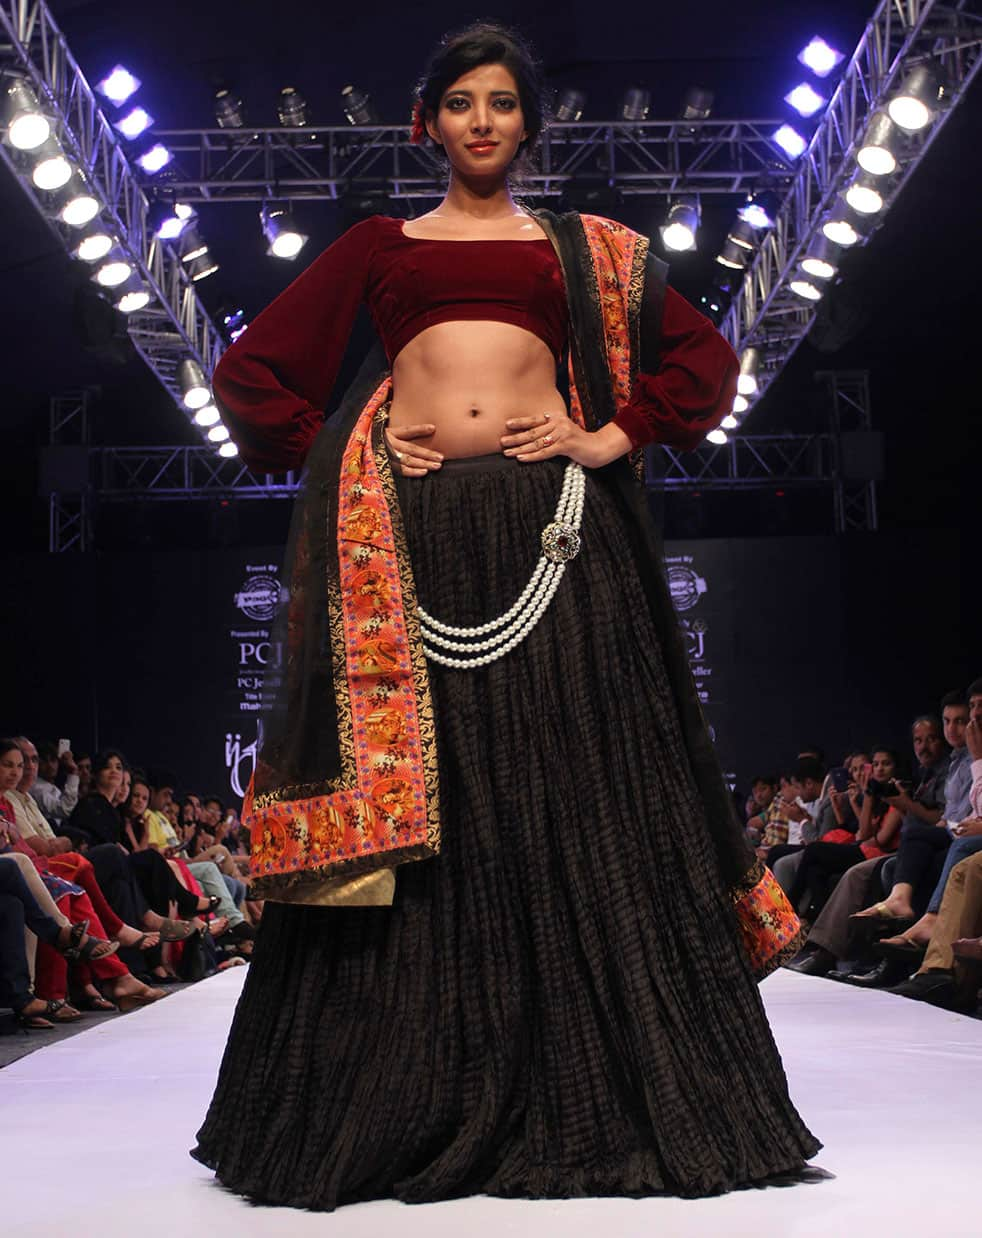 A model displays a creation by Sonia Mehra during the India Jewelry and Fashion Week in Ahmadabad.